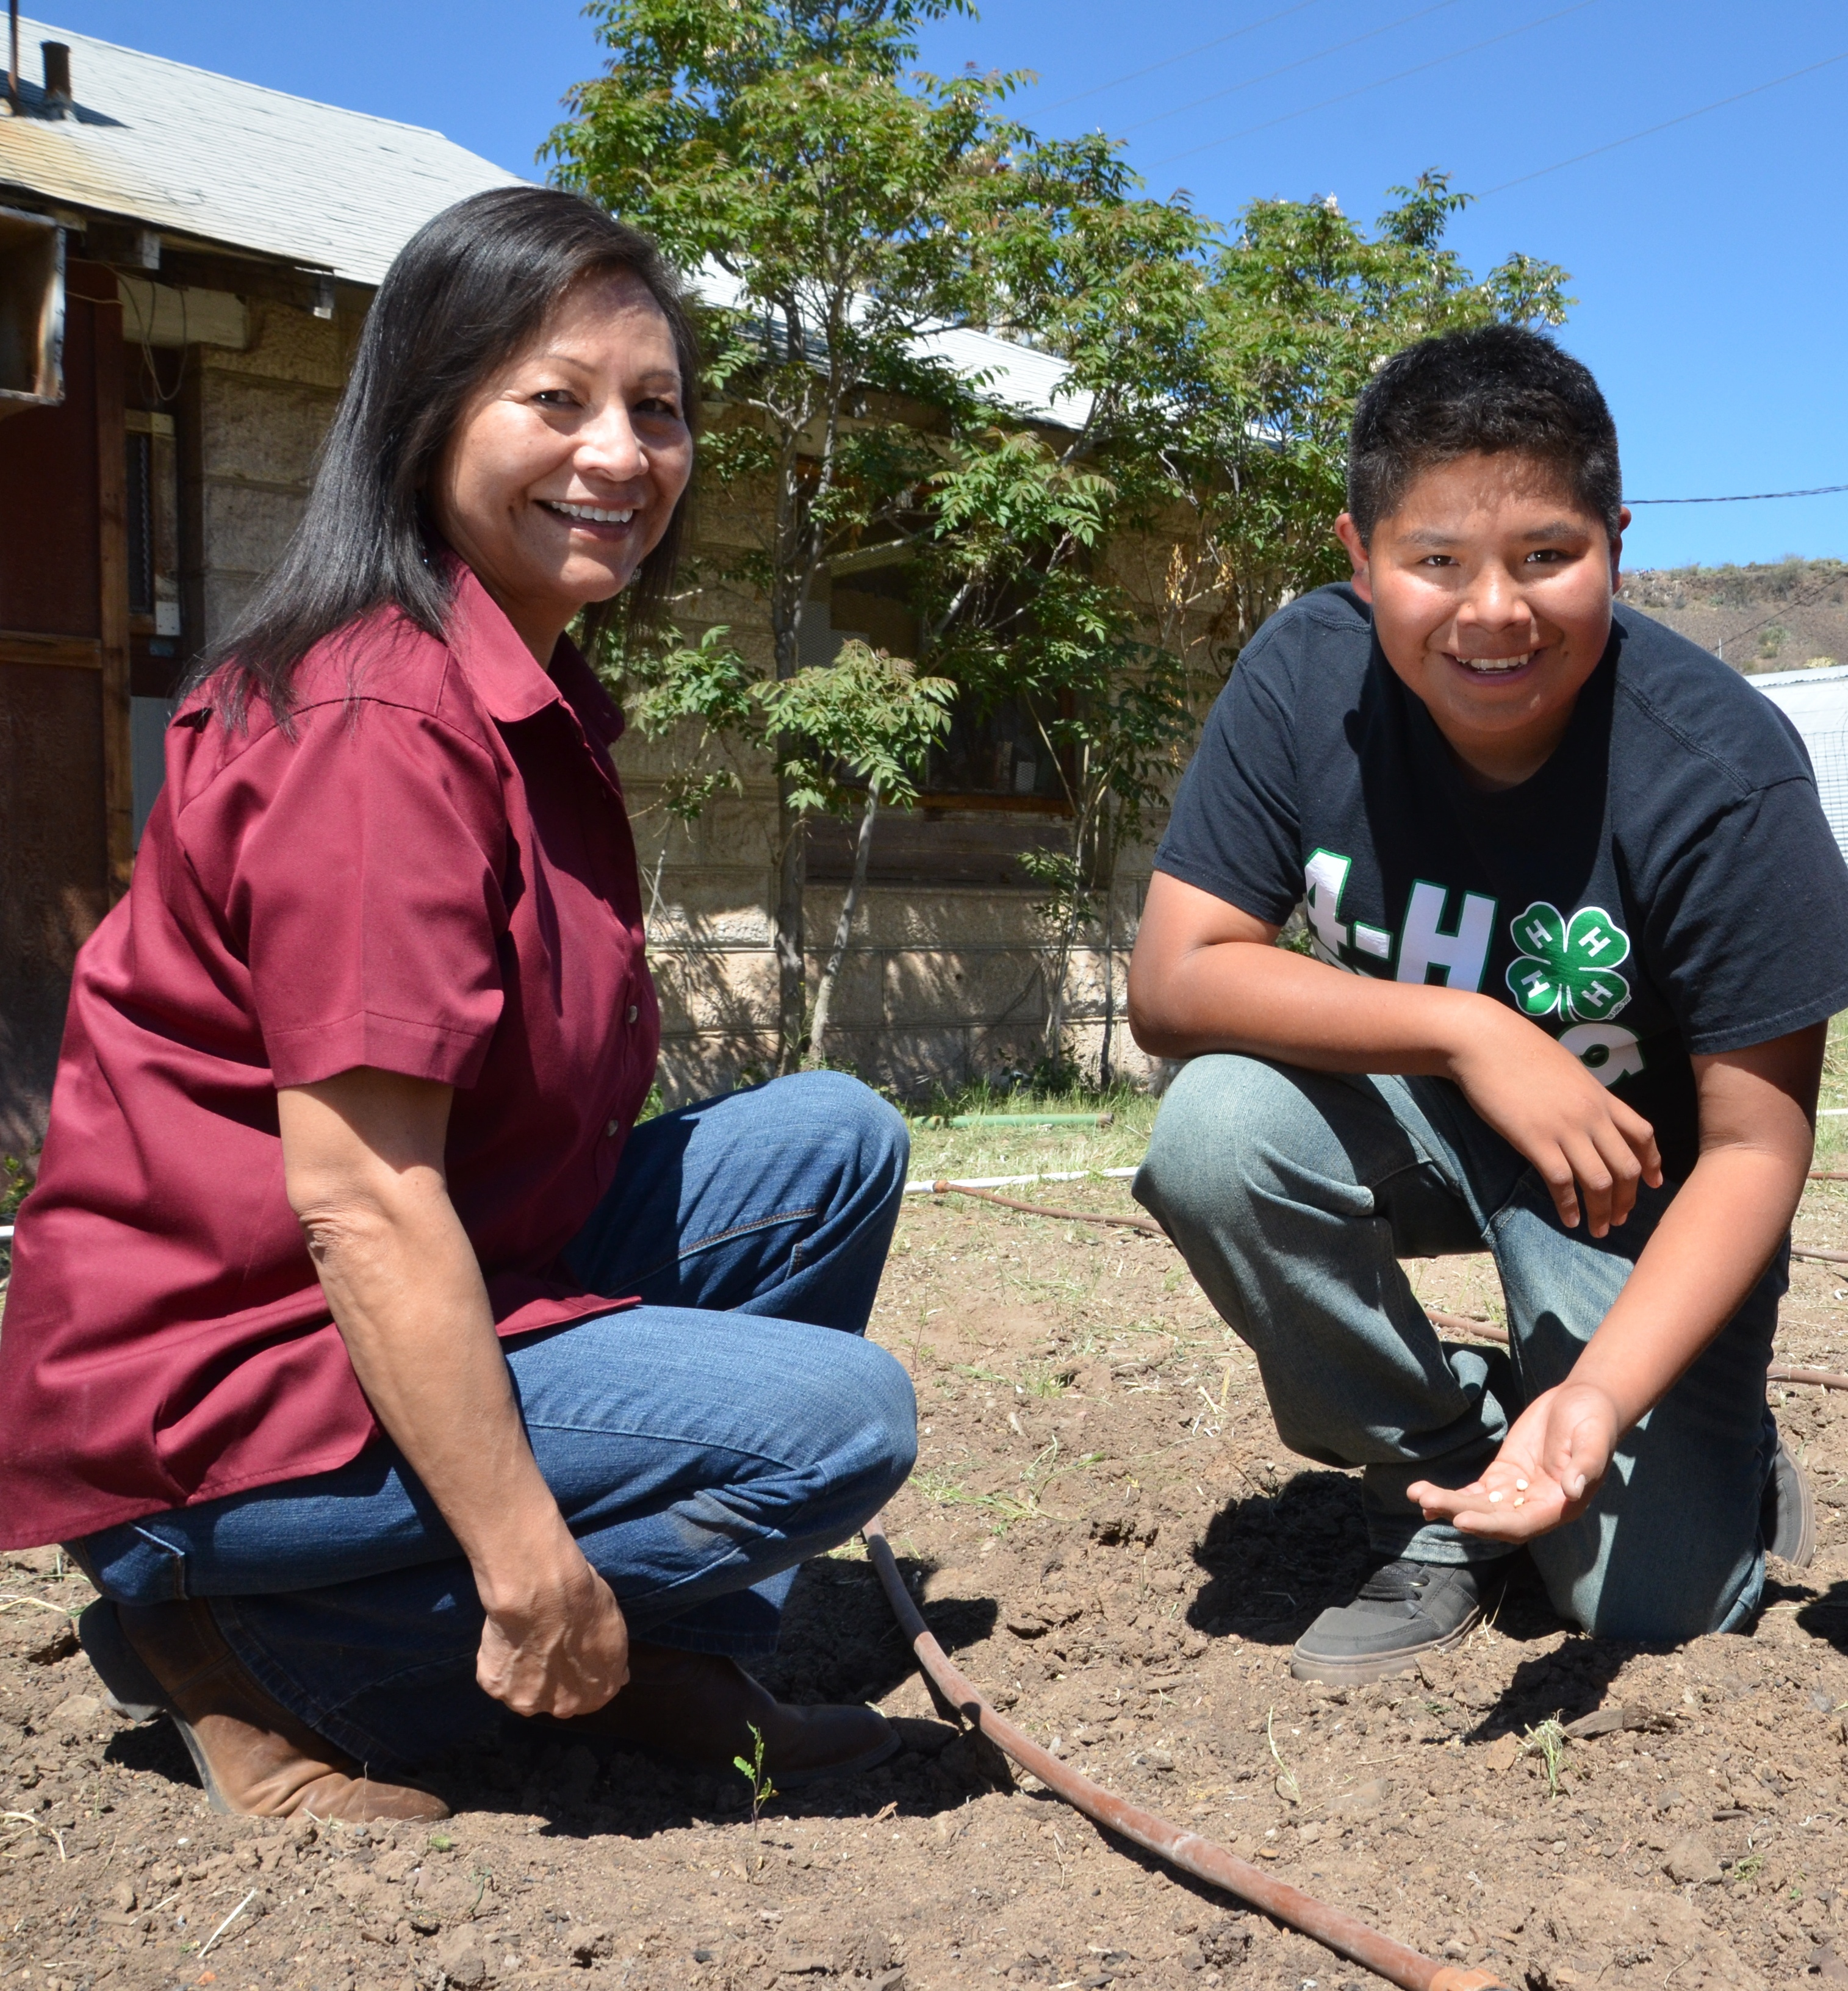 Millie Titla, NRCS district conservationist in San Carlos, Ariz., and Noah Titla, San Carlos 4-H Gar